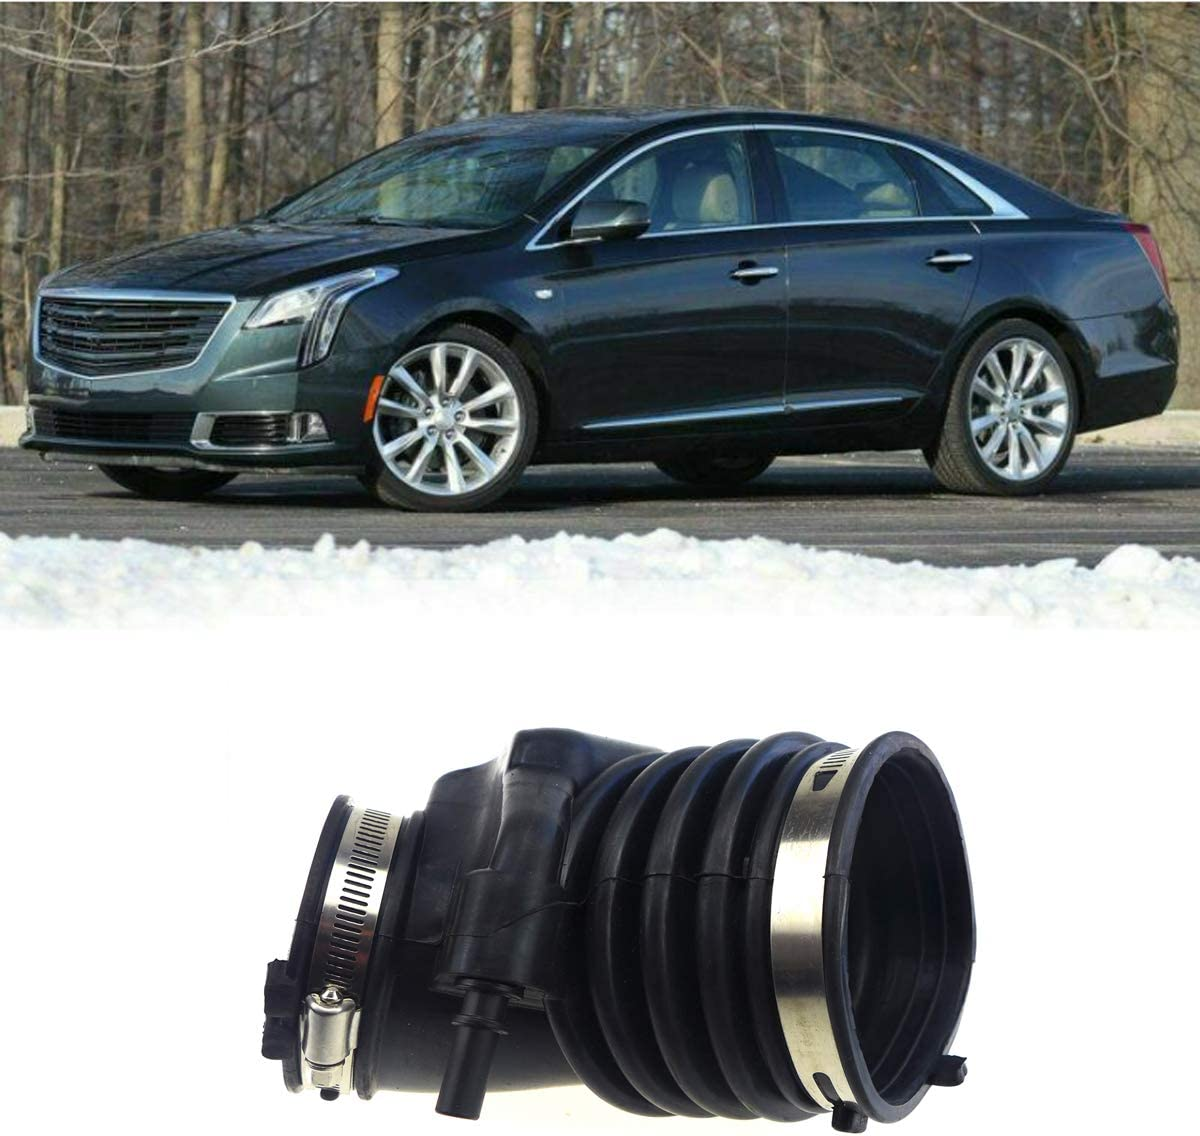 Air Intake Hose Tube Boot for Cadillac XTS 3.6 Liter 2013-2018, for Chevrolet Impala 3.6 Liter 2014-2018, Air Cleaner Intake Hose Boot Tube Duct, 22935937 22887315, 20885923